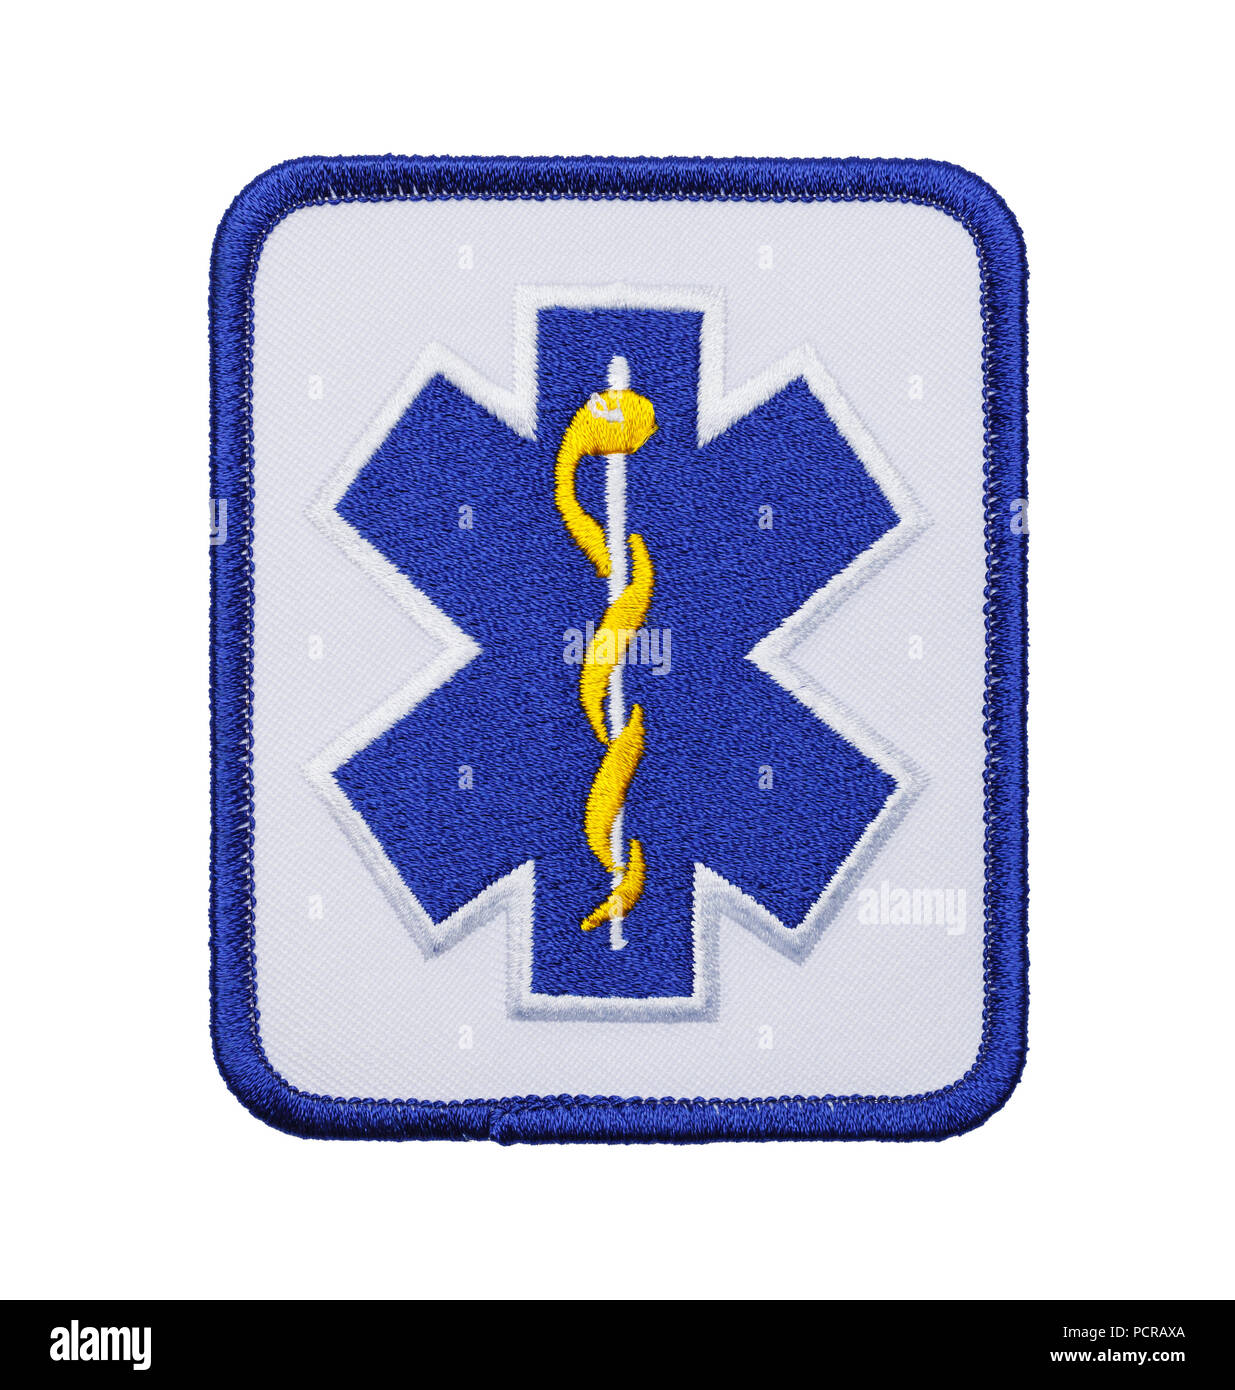 Blue EMT Paramedic Patch Isolated on White  Background. - Stock Image